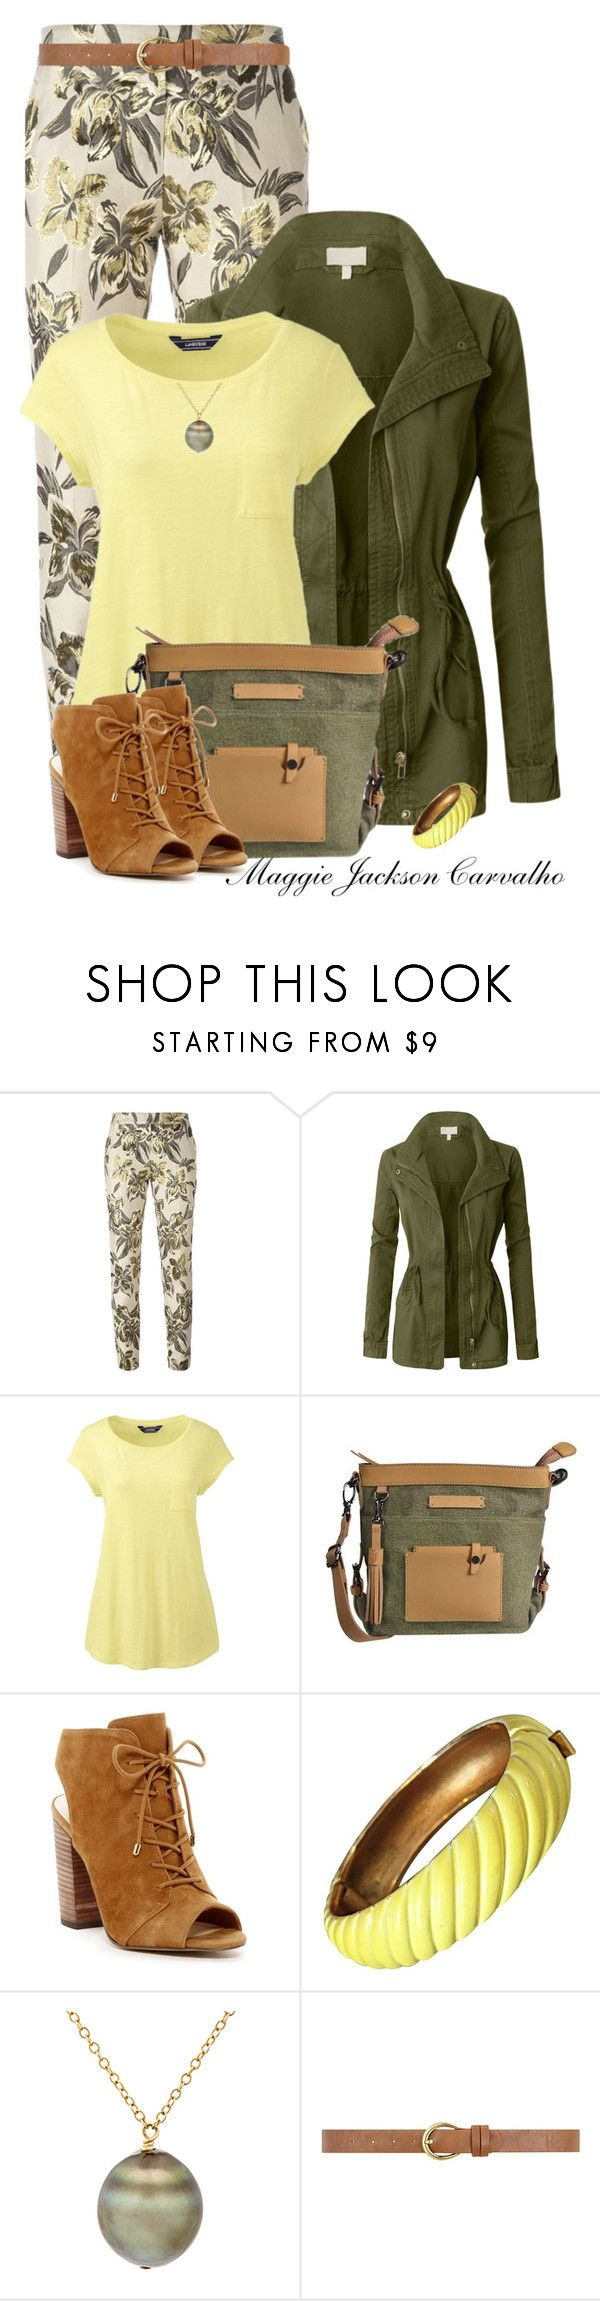 """""""Casual in Floral Print Leggings/Pants or Jeans"""" by maggie-jackson-carvalho on Polyvore featuring Christian Pellizzari, LE3NO, Lands' End, Sherpani, Jessica Simpson, Trifari, Samira 13 and Dorothy Perkins"""